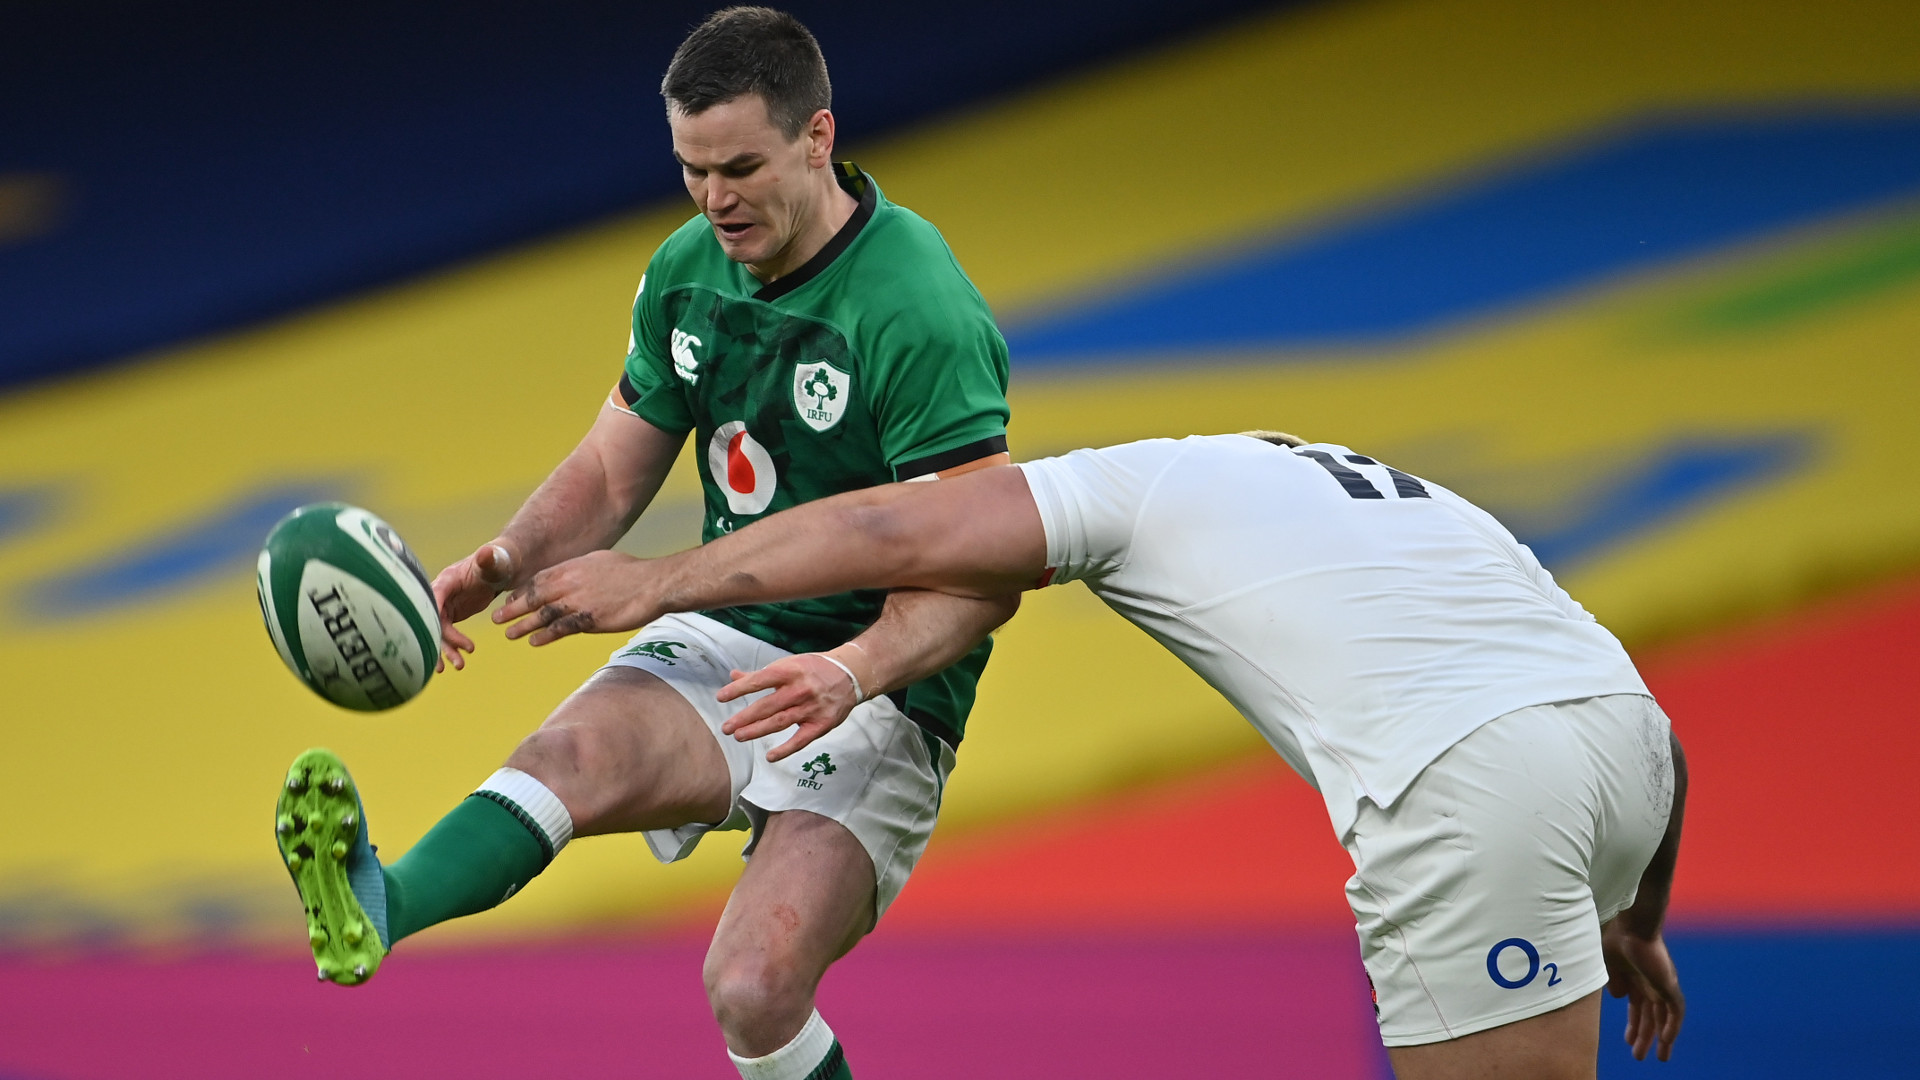 Six Nations 2021: Ireland set the standard with Six Nations win over England - Sexton